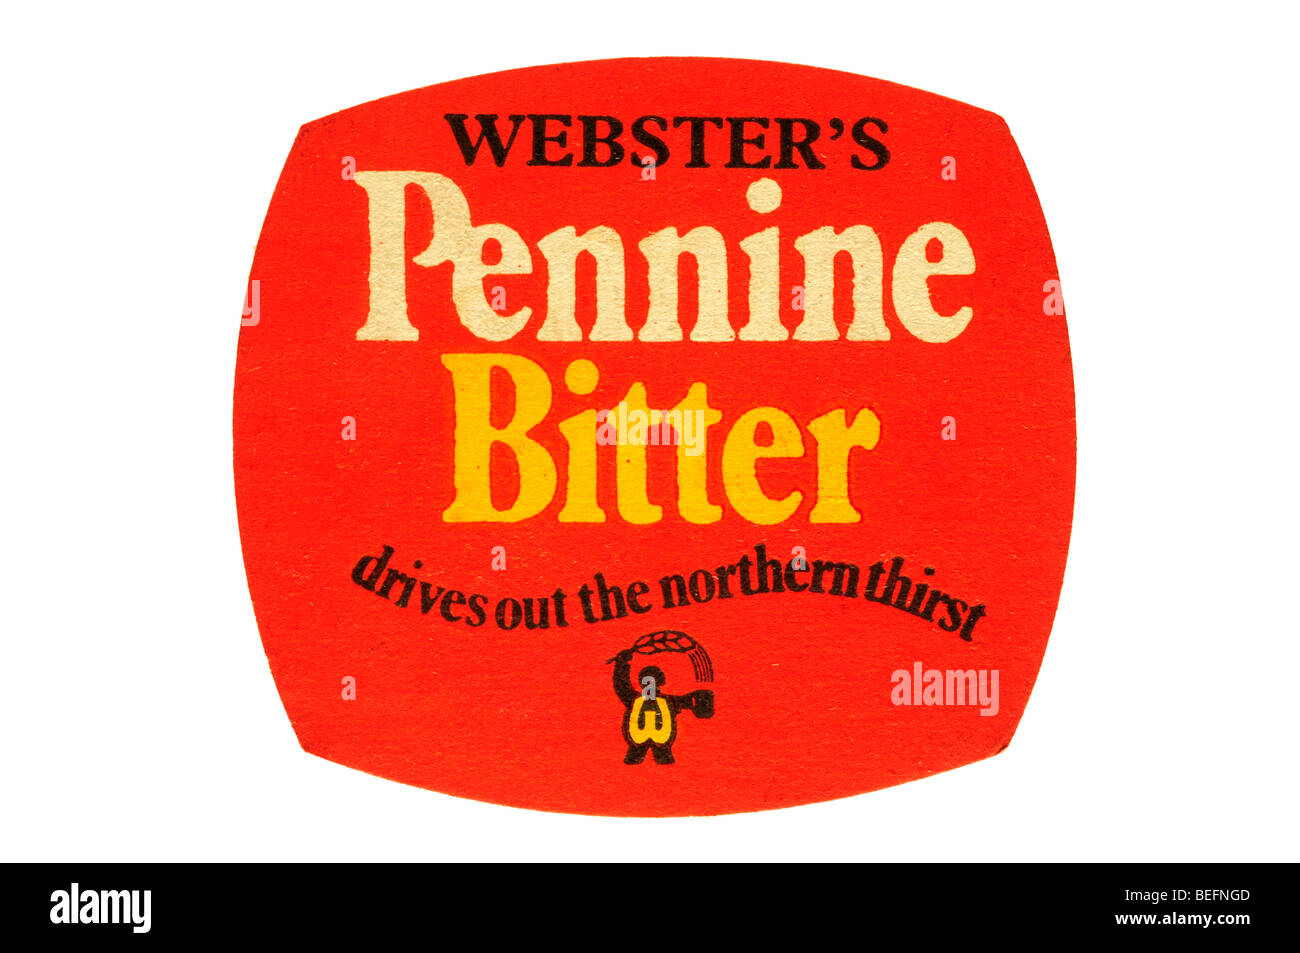 websters pennine bitter drives out the northern thirst - Stock Image